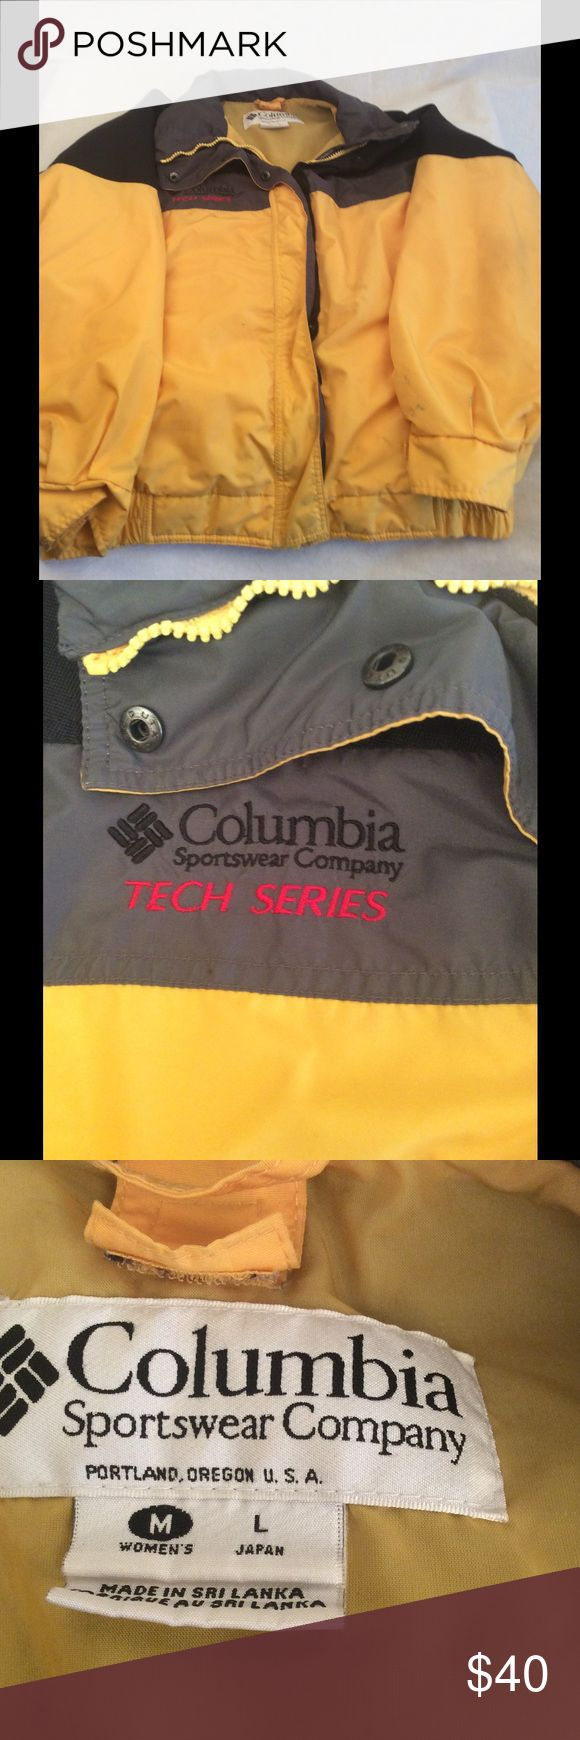 Women's Columbia Tech Series Jacket Women's size medium yellow and black Columbia Tech Series zip up jacket, in good condition, has some spots on end of sleeve otherwise flawless, comes from a smoke free home. Reasonable offers considered  ✅Bundle for a discount & save on shipping  ✅Same/next day shipping Columbia Jackets & Coats Utility Jackets